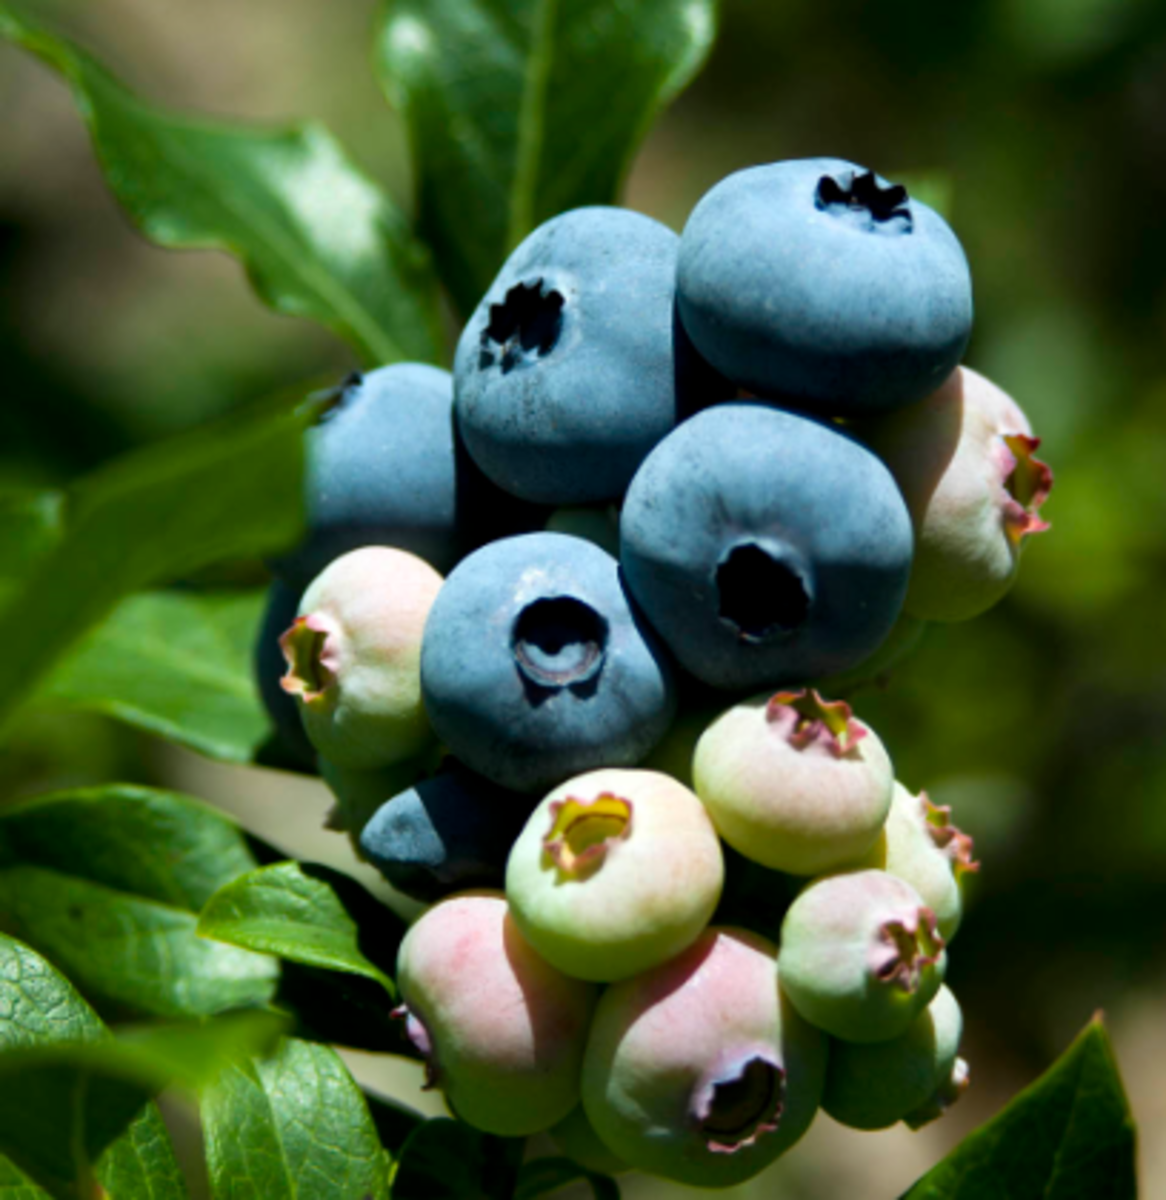 The Beautiful Blueberry ripening on the bush.